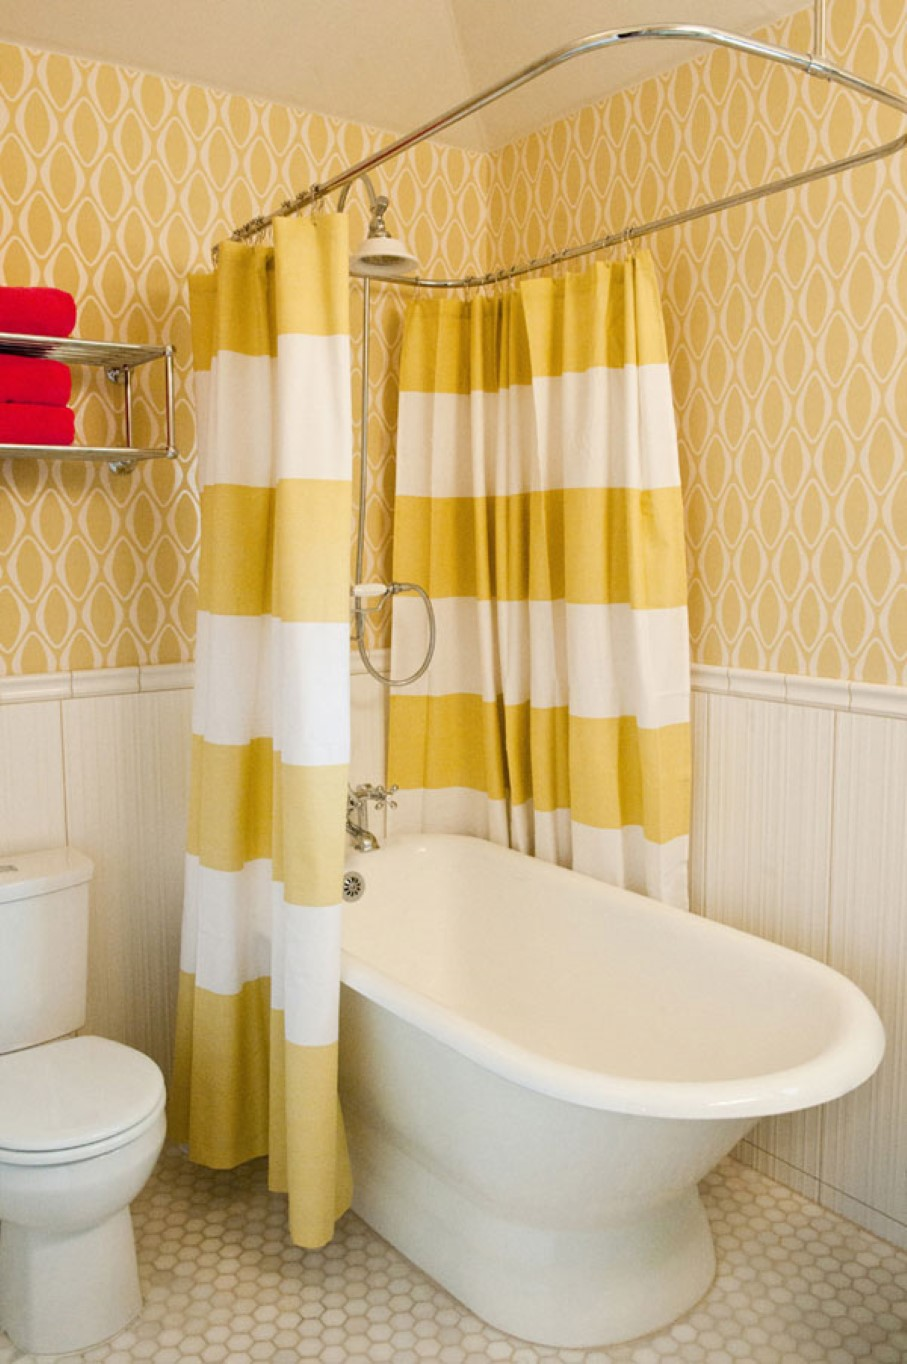 Stunning Yellow Bohemian Chower Curtain Design With Curved Rod And Stripe Pattern White Tub